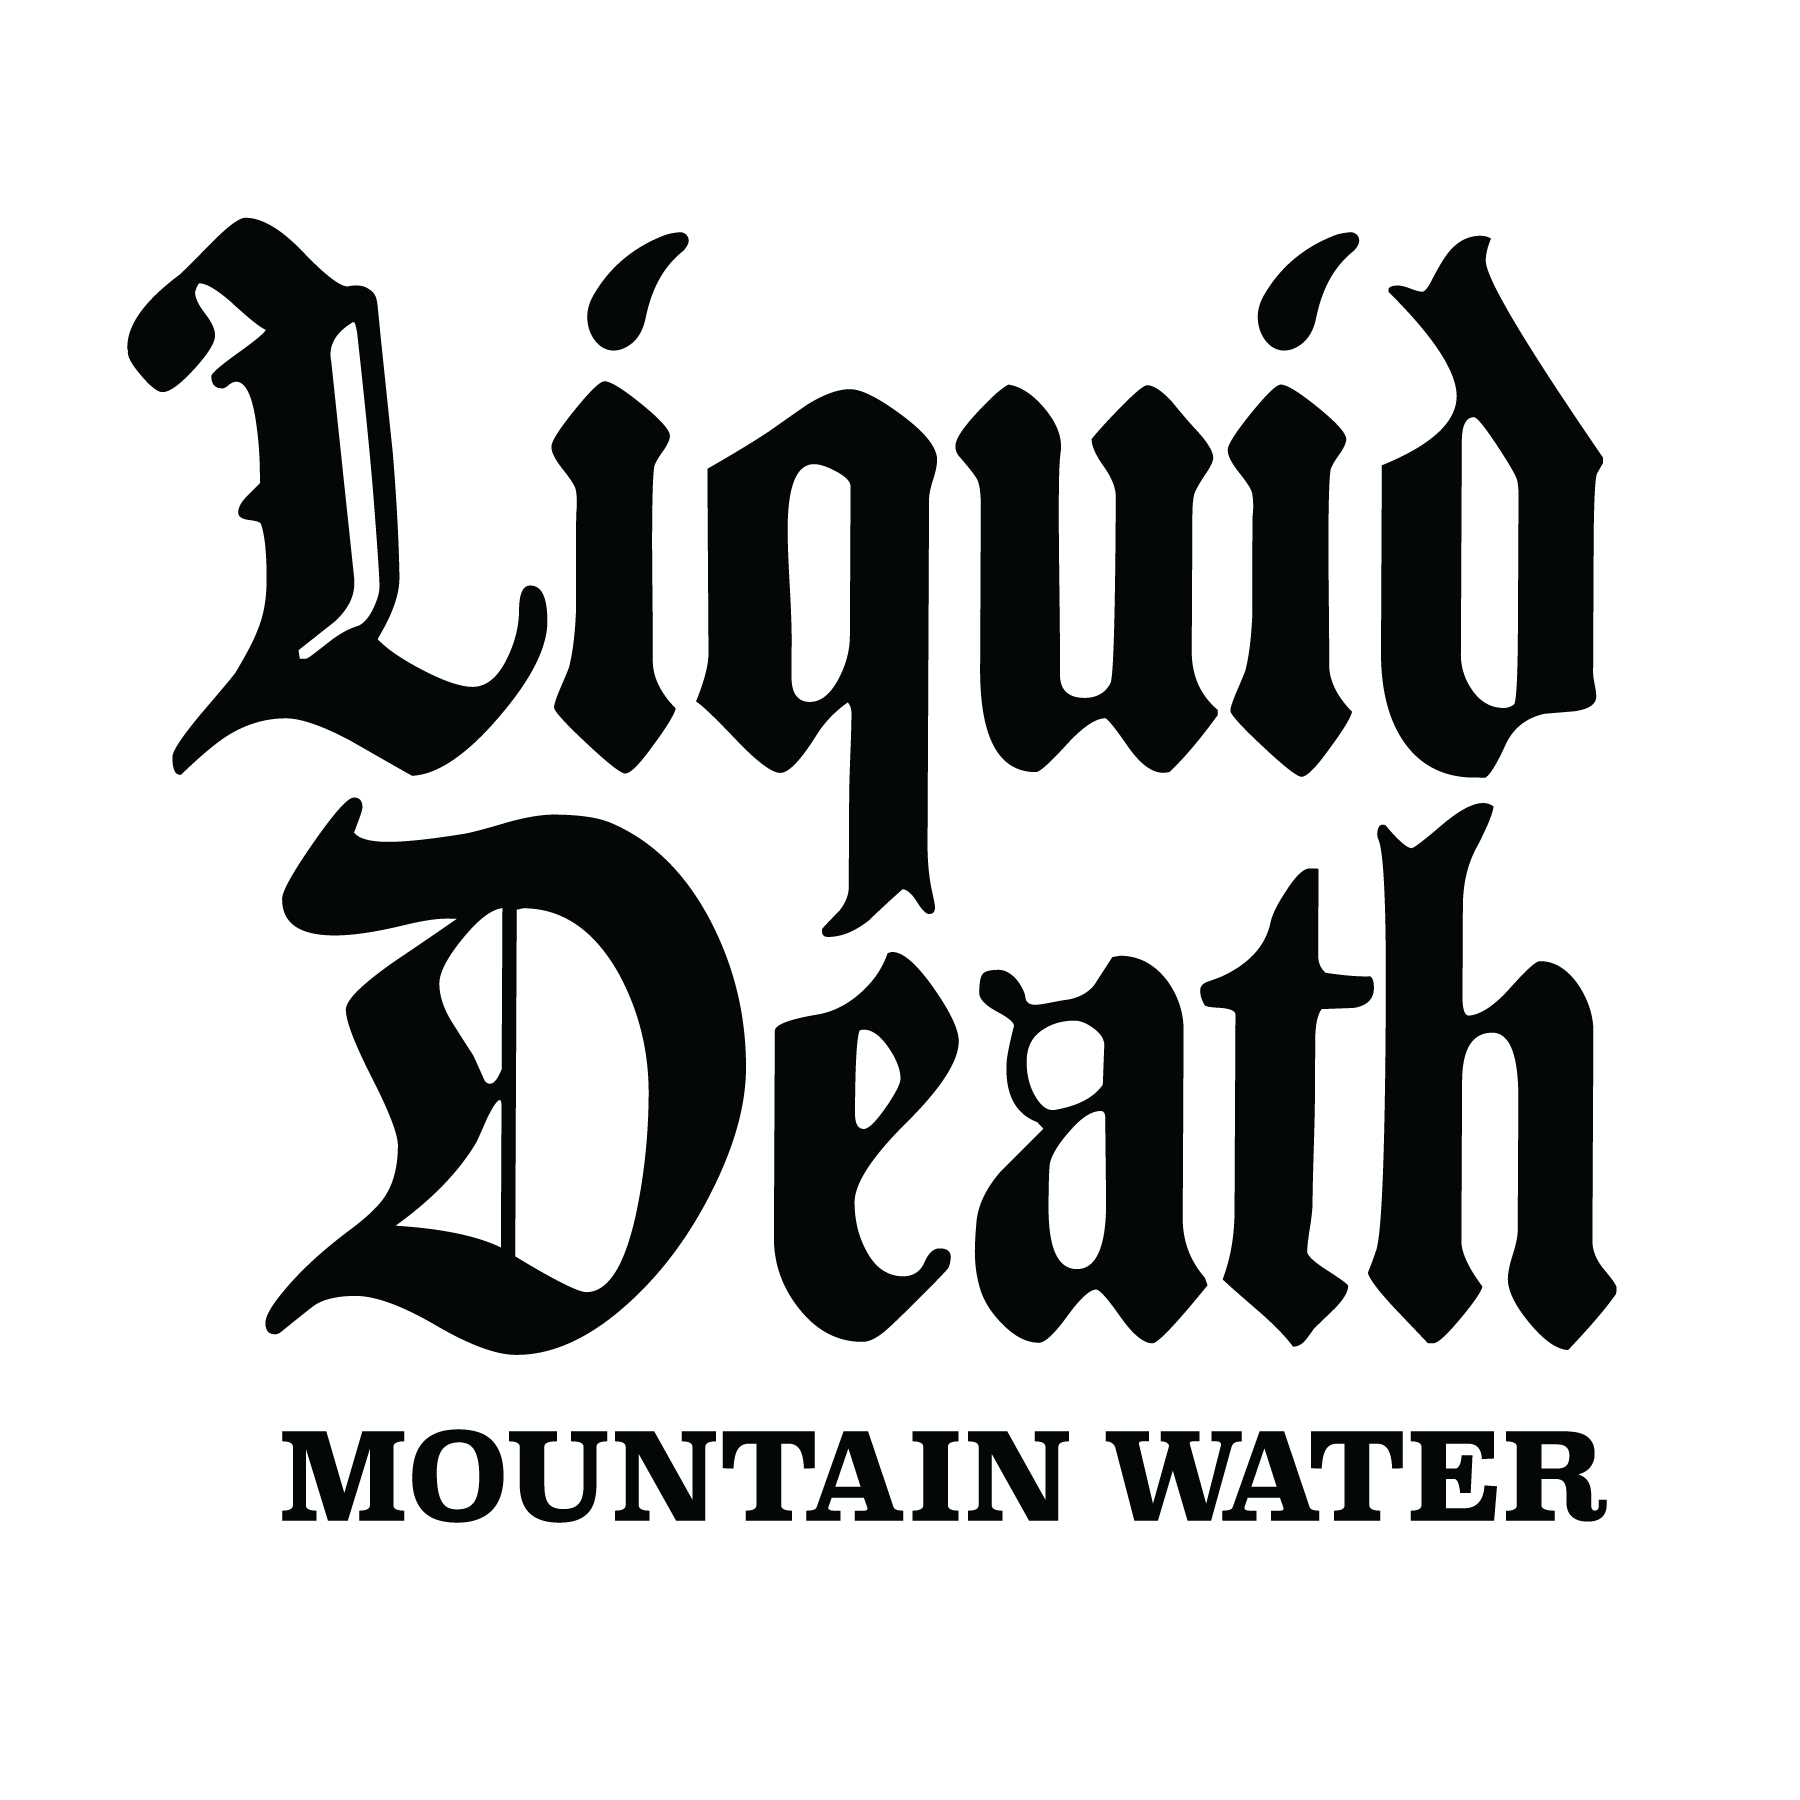 https://liquiddeath.com/